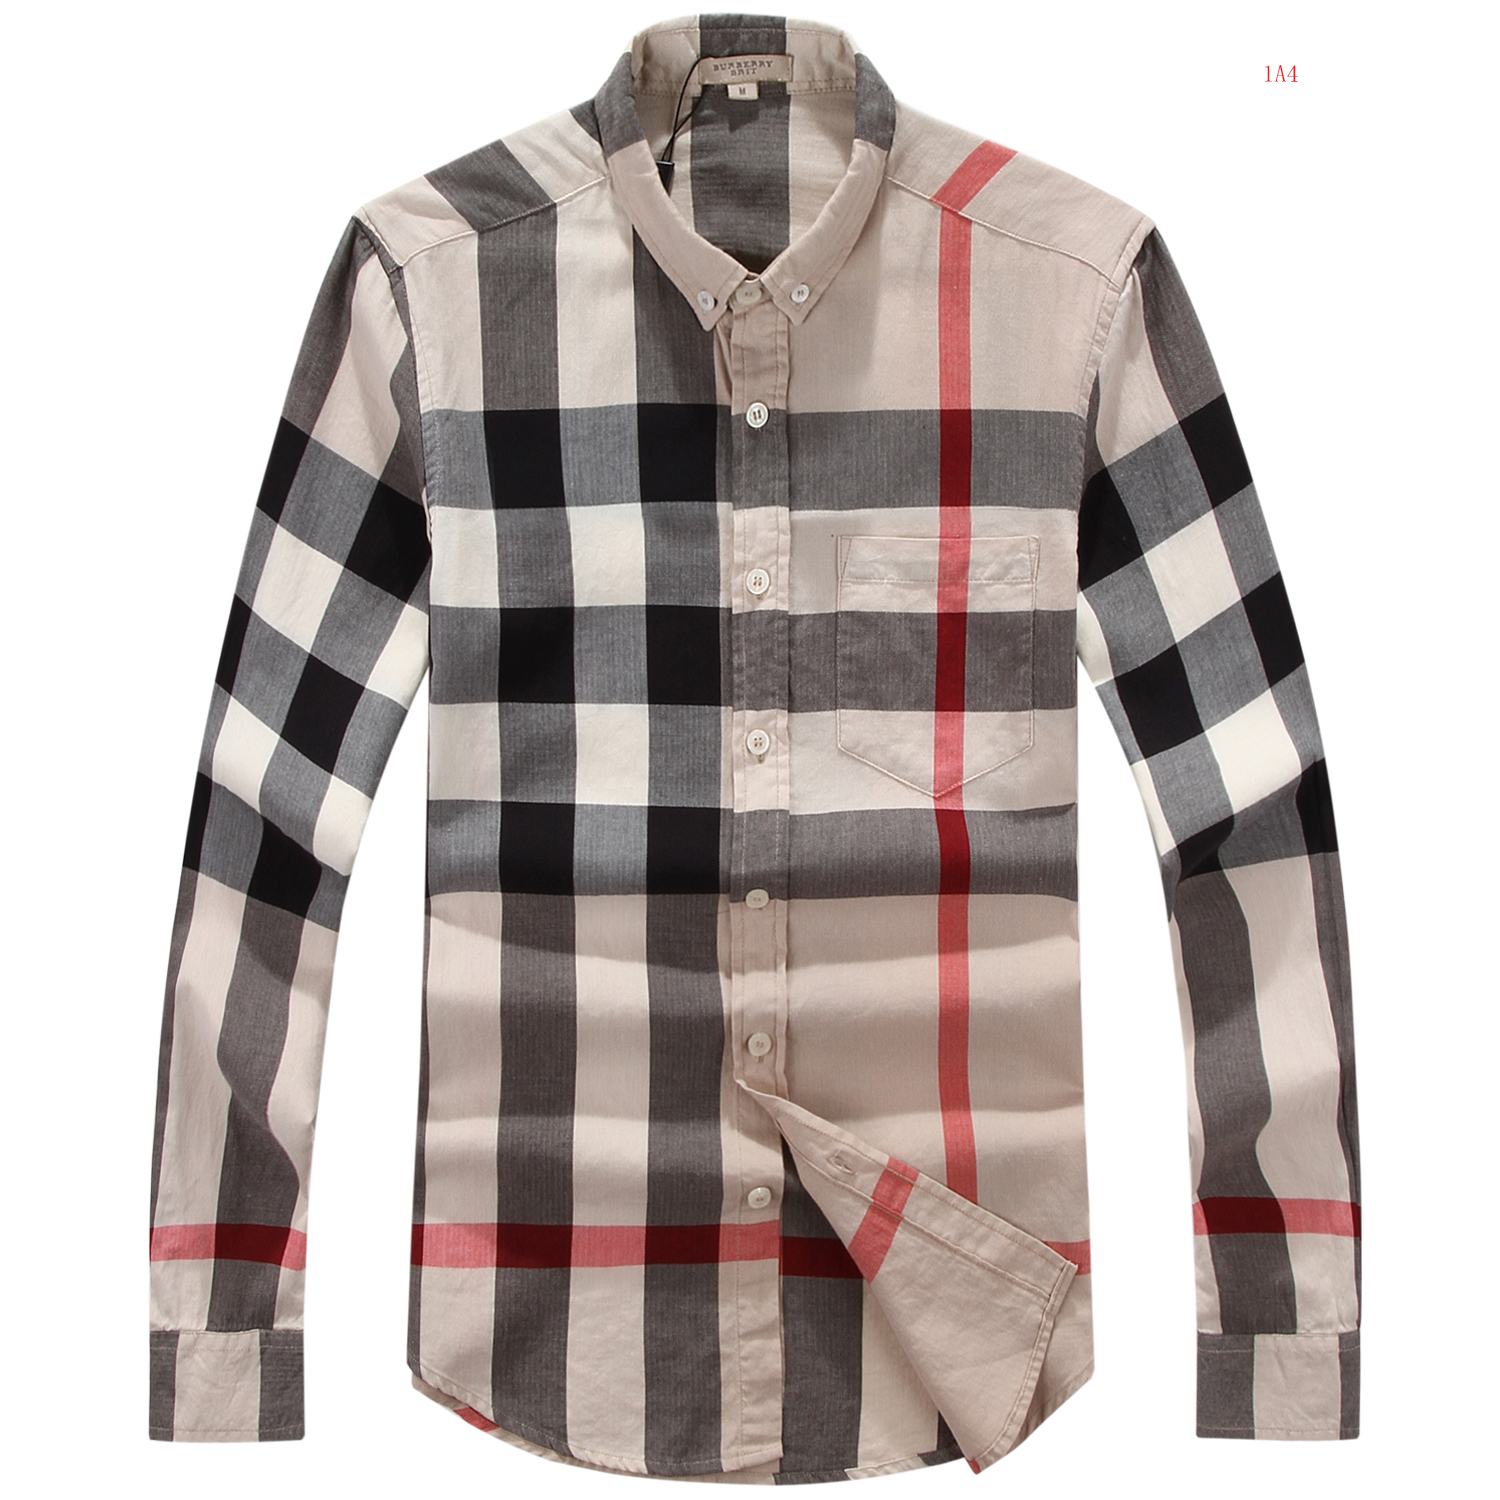 Burberry Clothing Logo Png Transparent Burberry Clothing